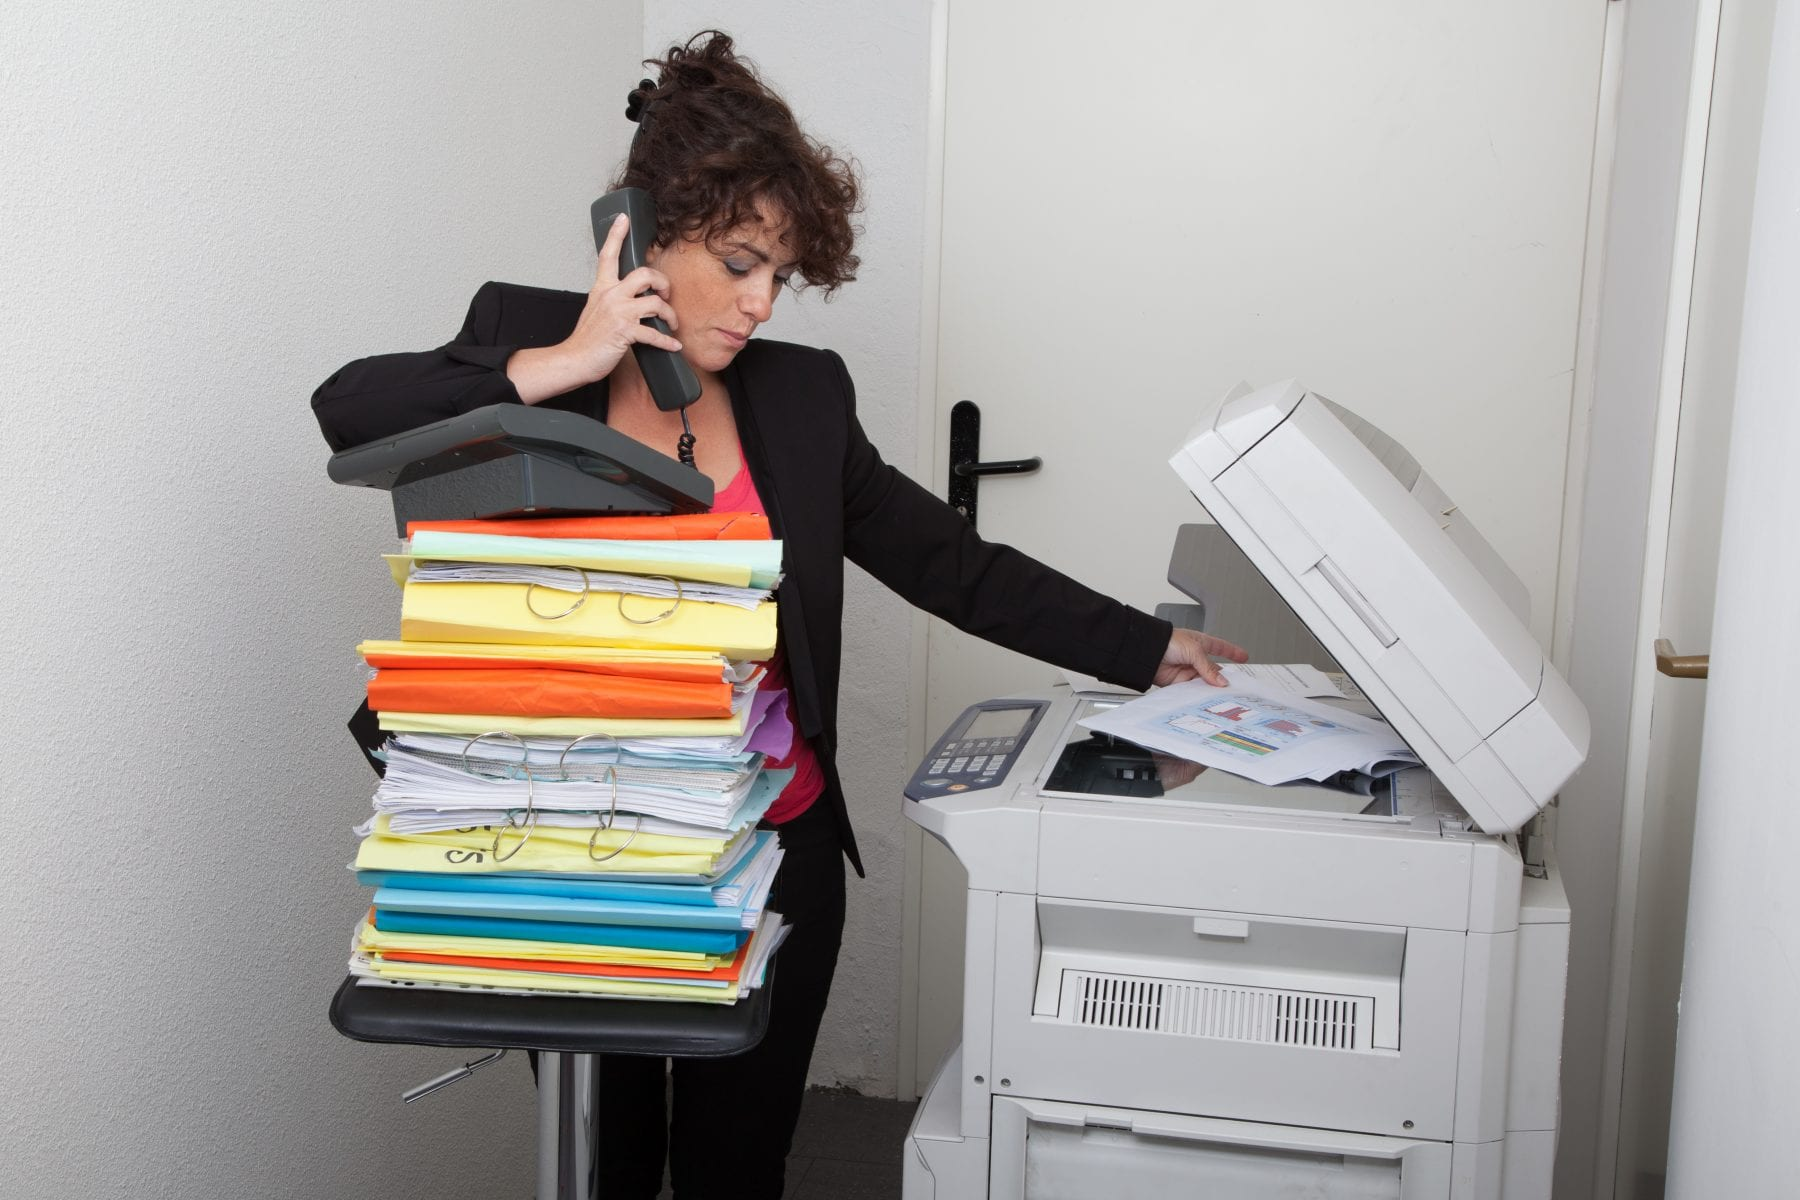 paying top dollar for photocopies e typist